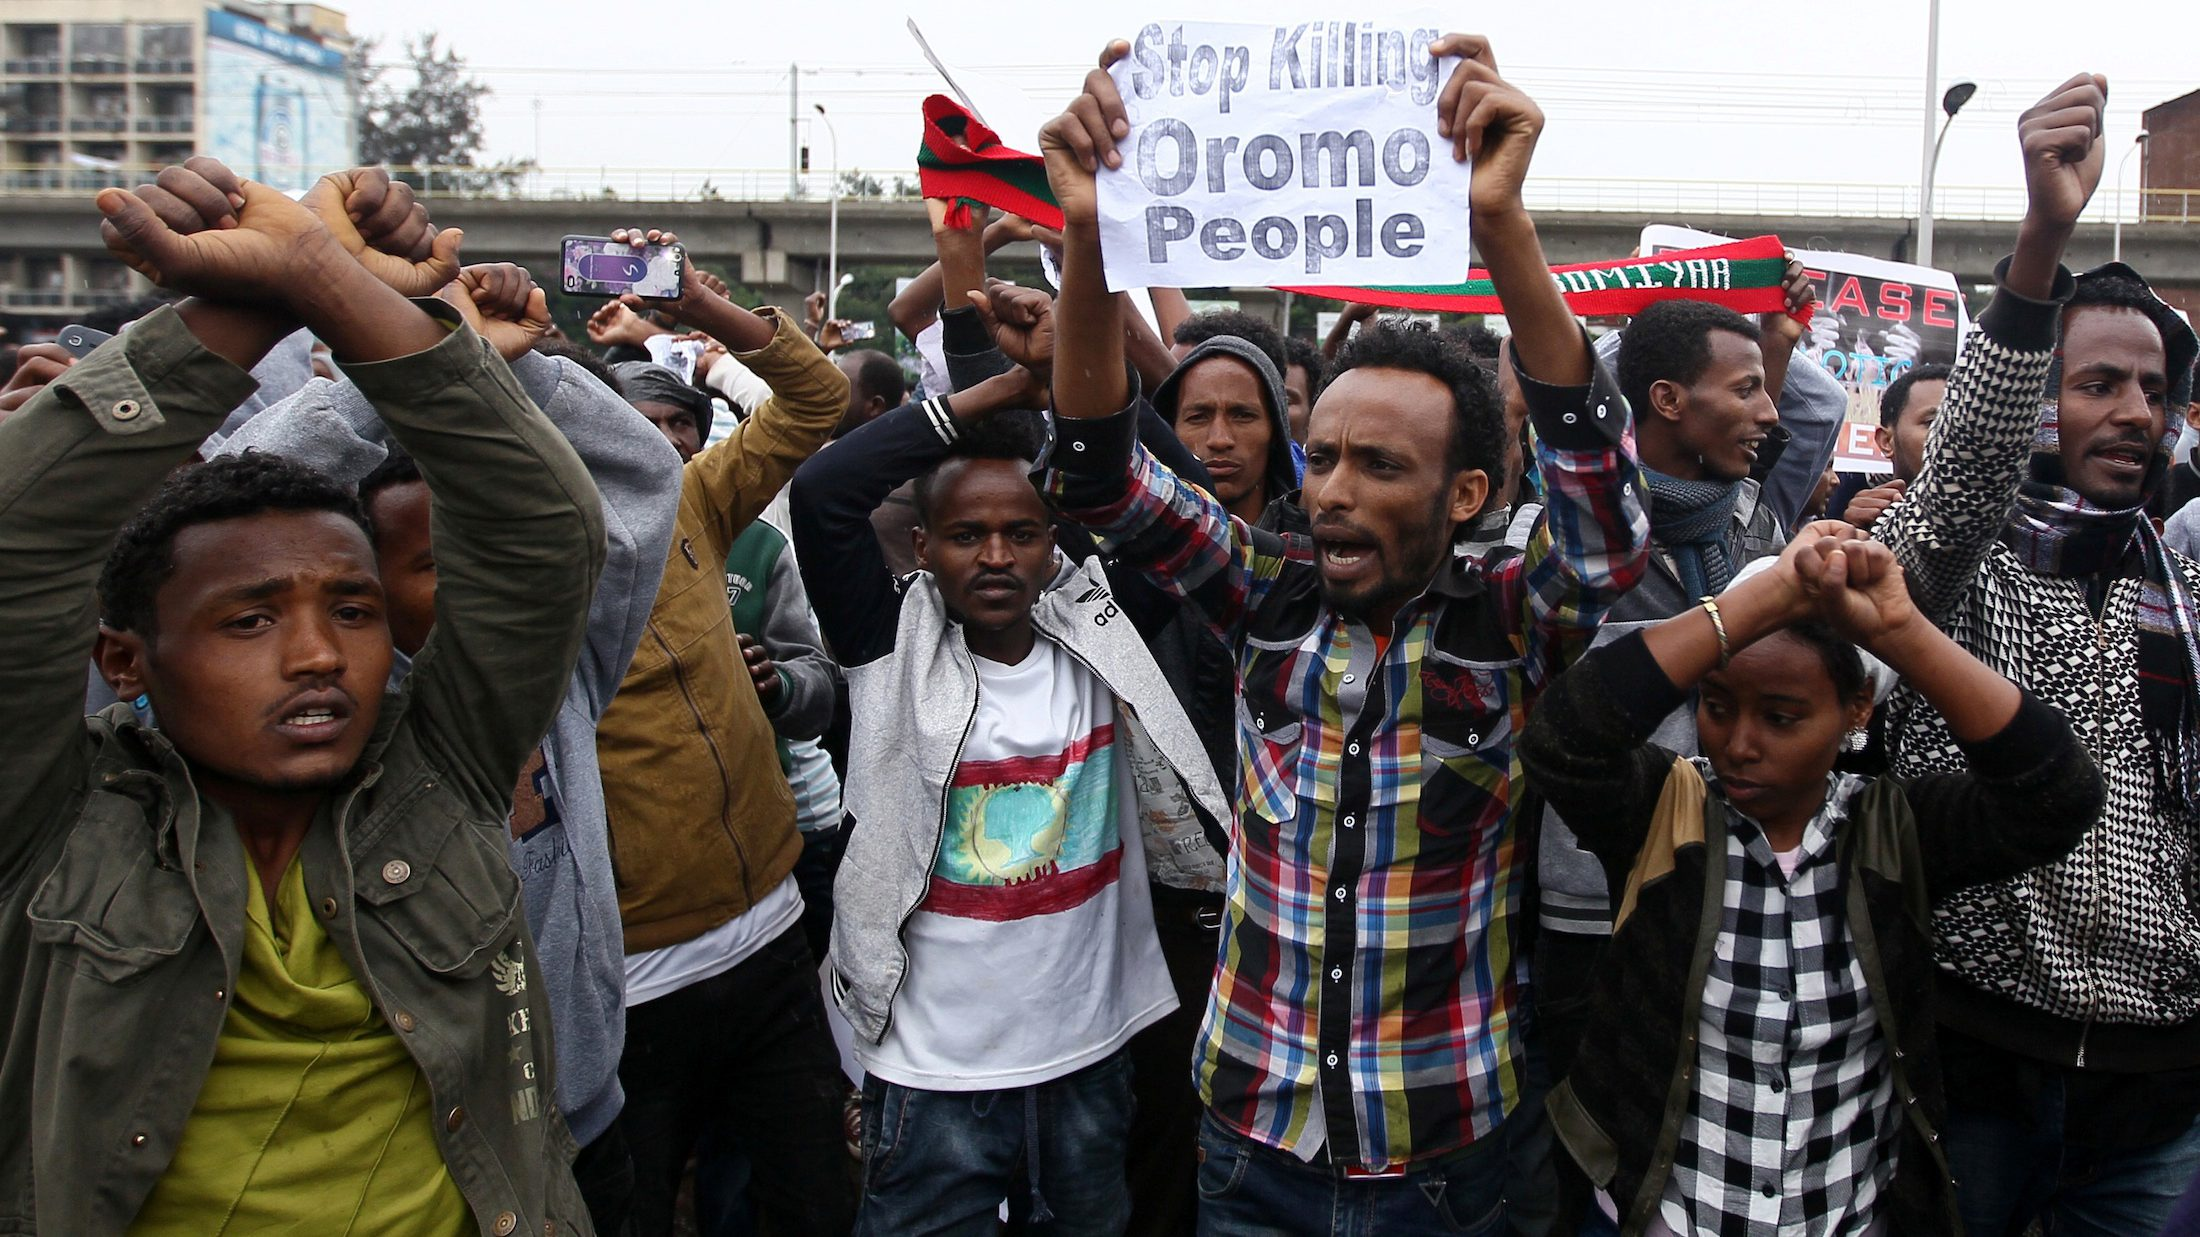 Protesters chant slogans during a demonstration over what they say is unfair distribution of wealth in the country at Meskel Square in Ethiopia's capital Addis Ababa, August 6, 2016.